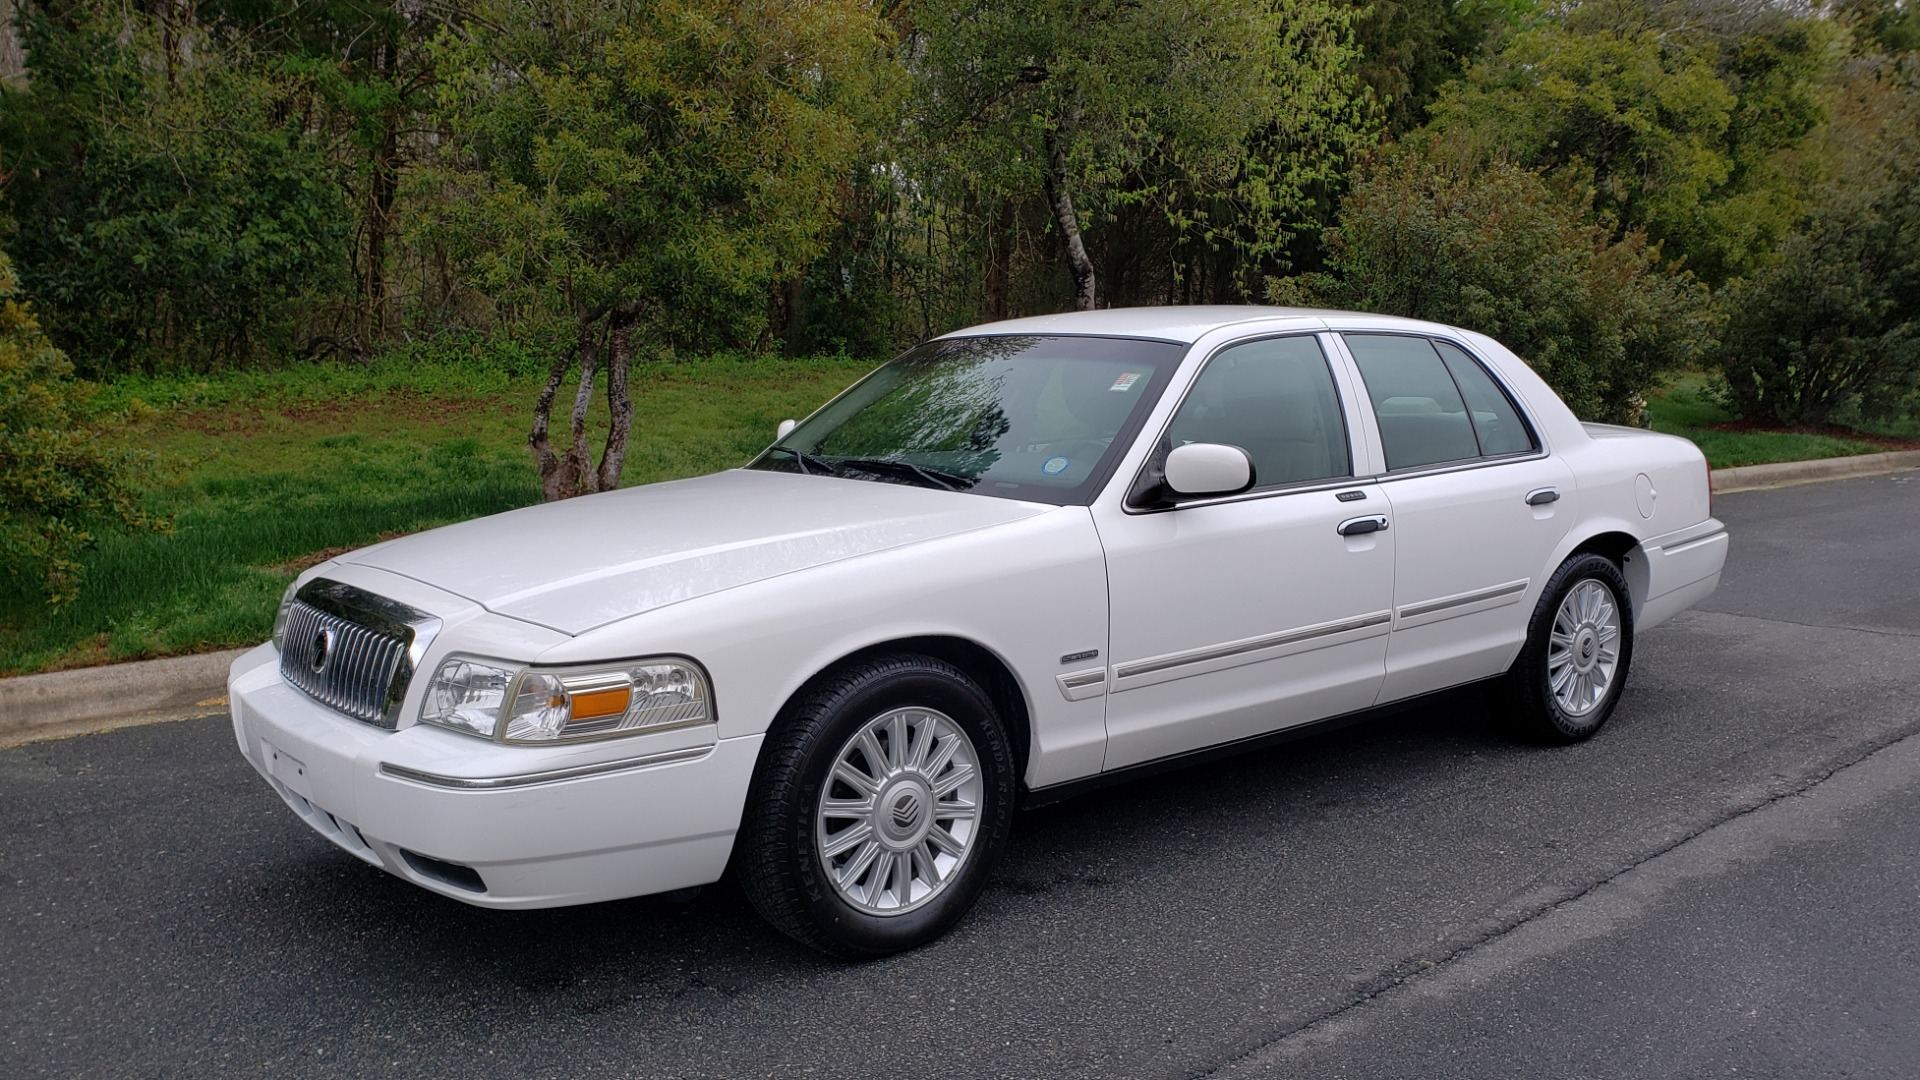 Used 2011 Mercury GRAND MARQUIS LS / 4.6L V8 / 4-SPD AUTO / KEYLESS ENTRY / LOW MILES for sale Sold at Formula Imports in Charlotte NC 28227 1